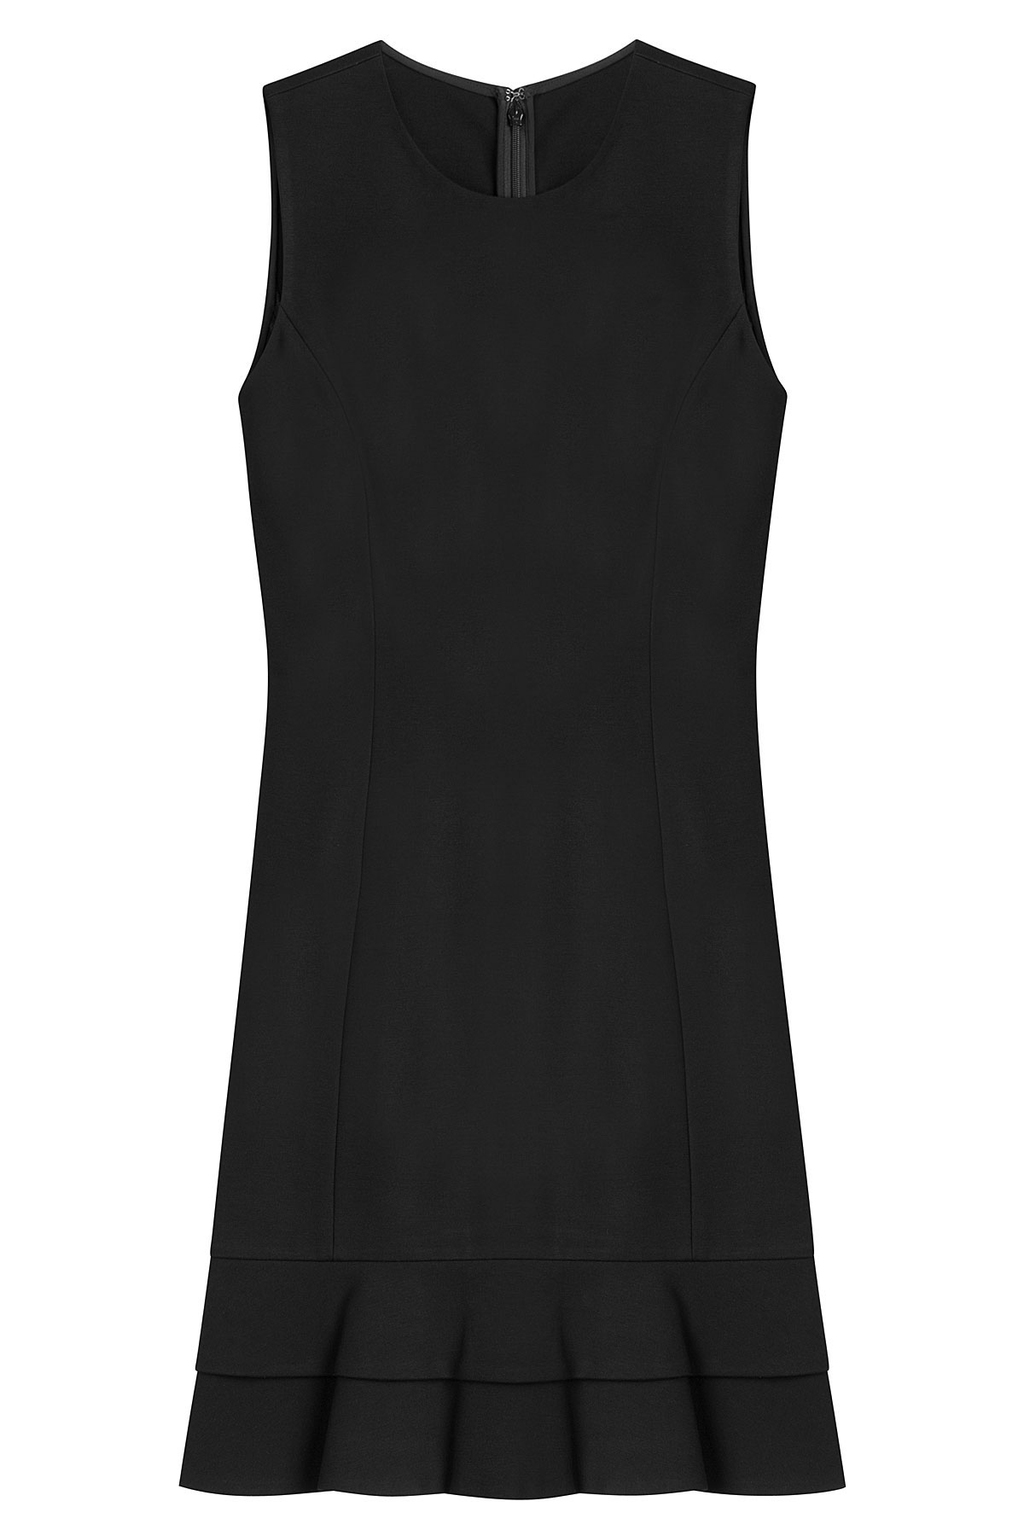 Dress With Ruffles - style: shift; pattern: plain; sleeve style: sleeveless; predominant colour: black; occasions: evening; length: just above the knee; fit: body skimming; fibres: viscose/rayon - stretch; neckline: crew; sleeve length: sleeveless; pattern type: fabric; texture group: jersey - stretchy/drapey; season: a/w 2016; wardrobe: event